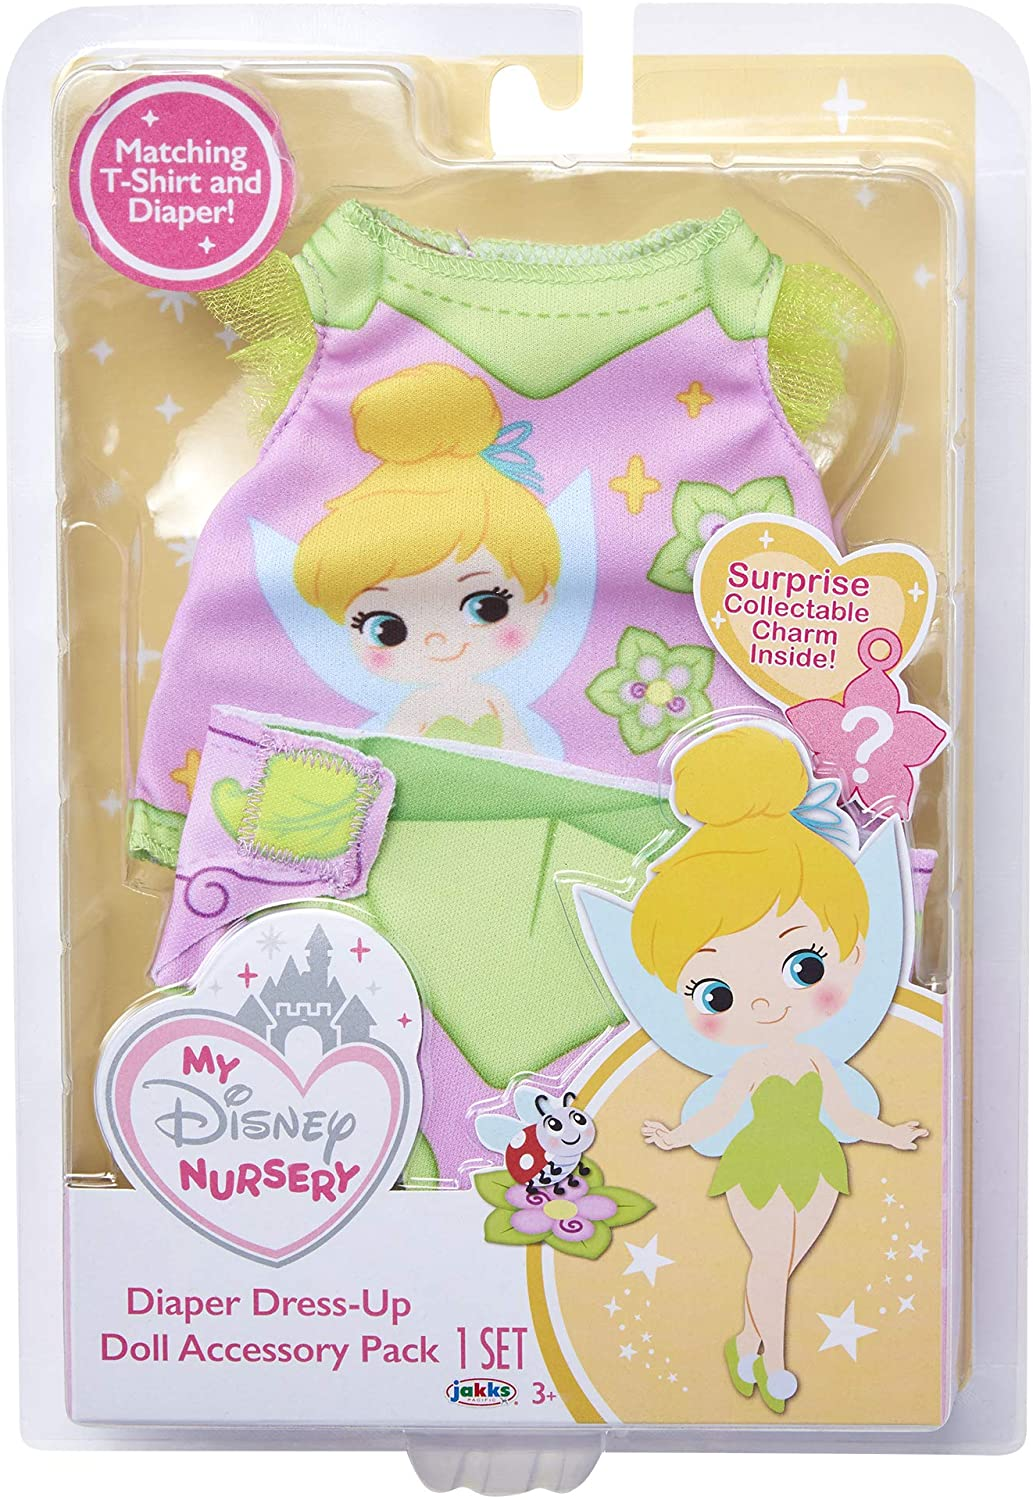 Doll Diaper Cover Clip with Charm My Disney Nursery Baby Doll Clothes /& Accessories Includes Doll T-Shirt Tinker Bell Diaper Accessory Pack Inspired by Disneys Tinker Bell Character